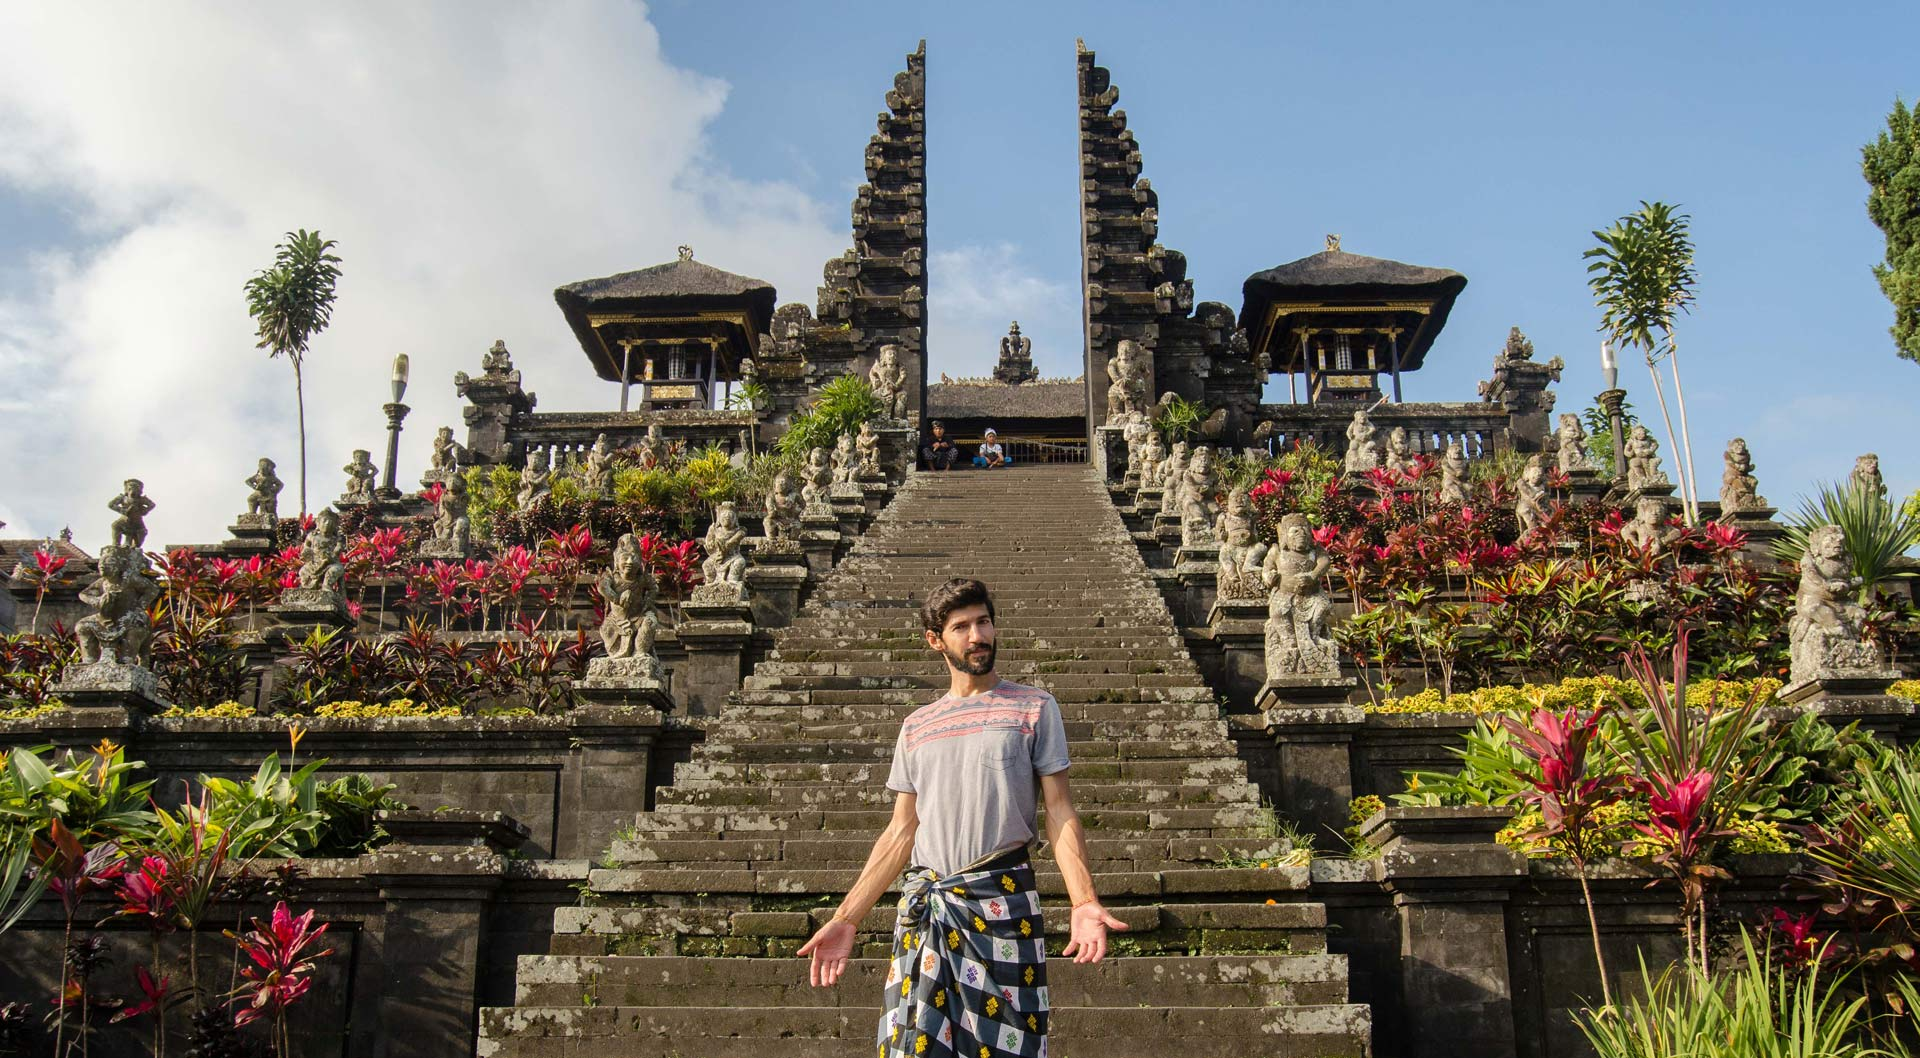 Nuno being a good tourist in Bali.